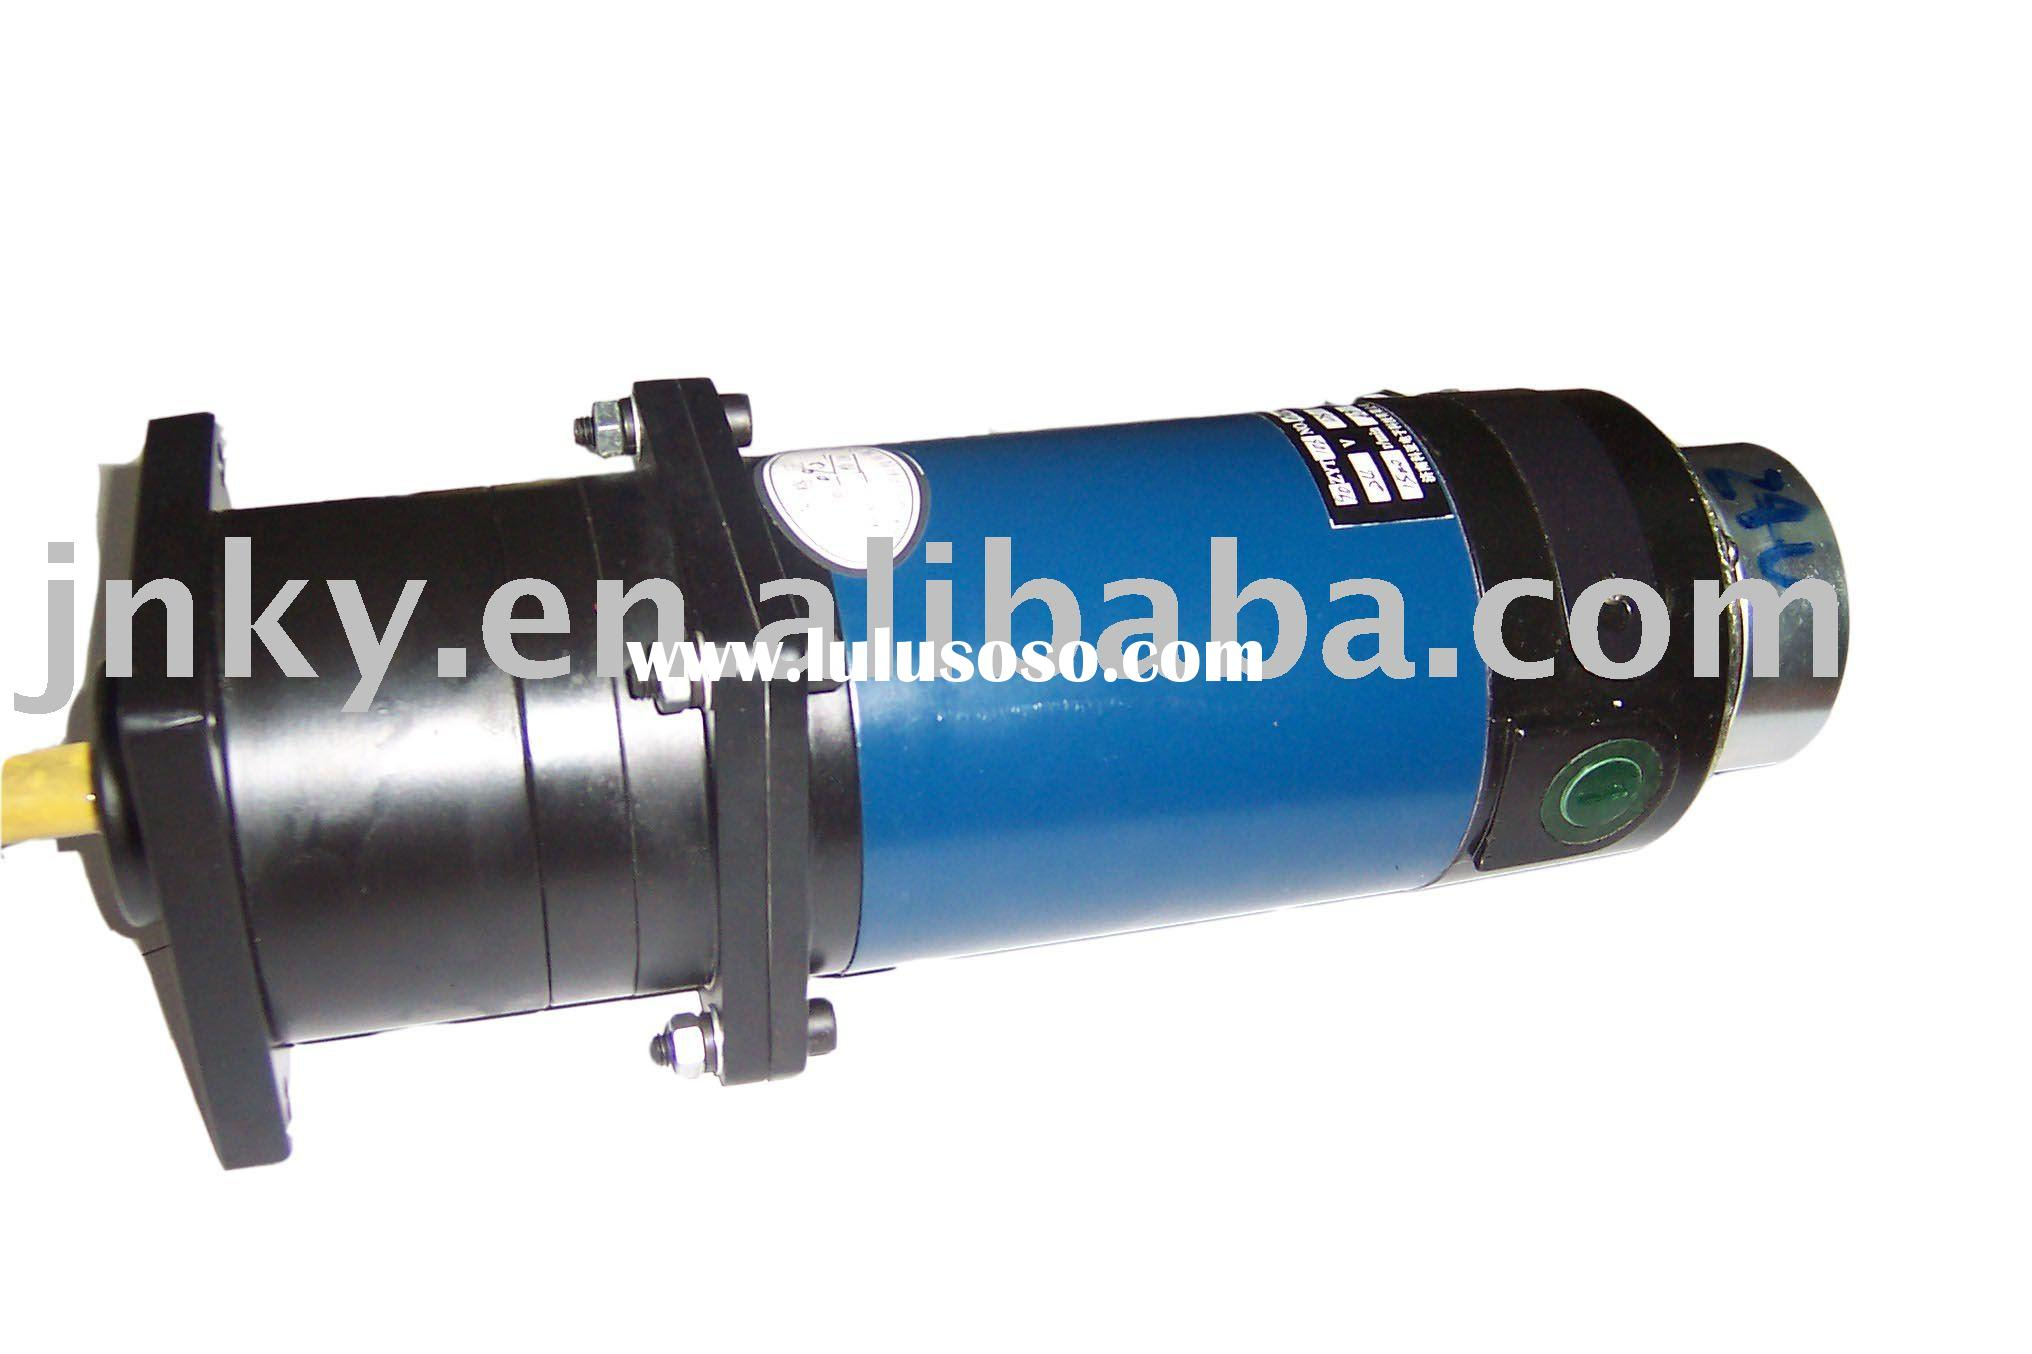 110V/245W dc gear motor with electromagnetic braking